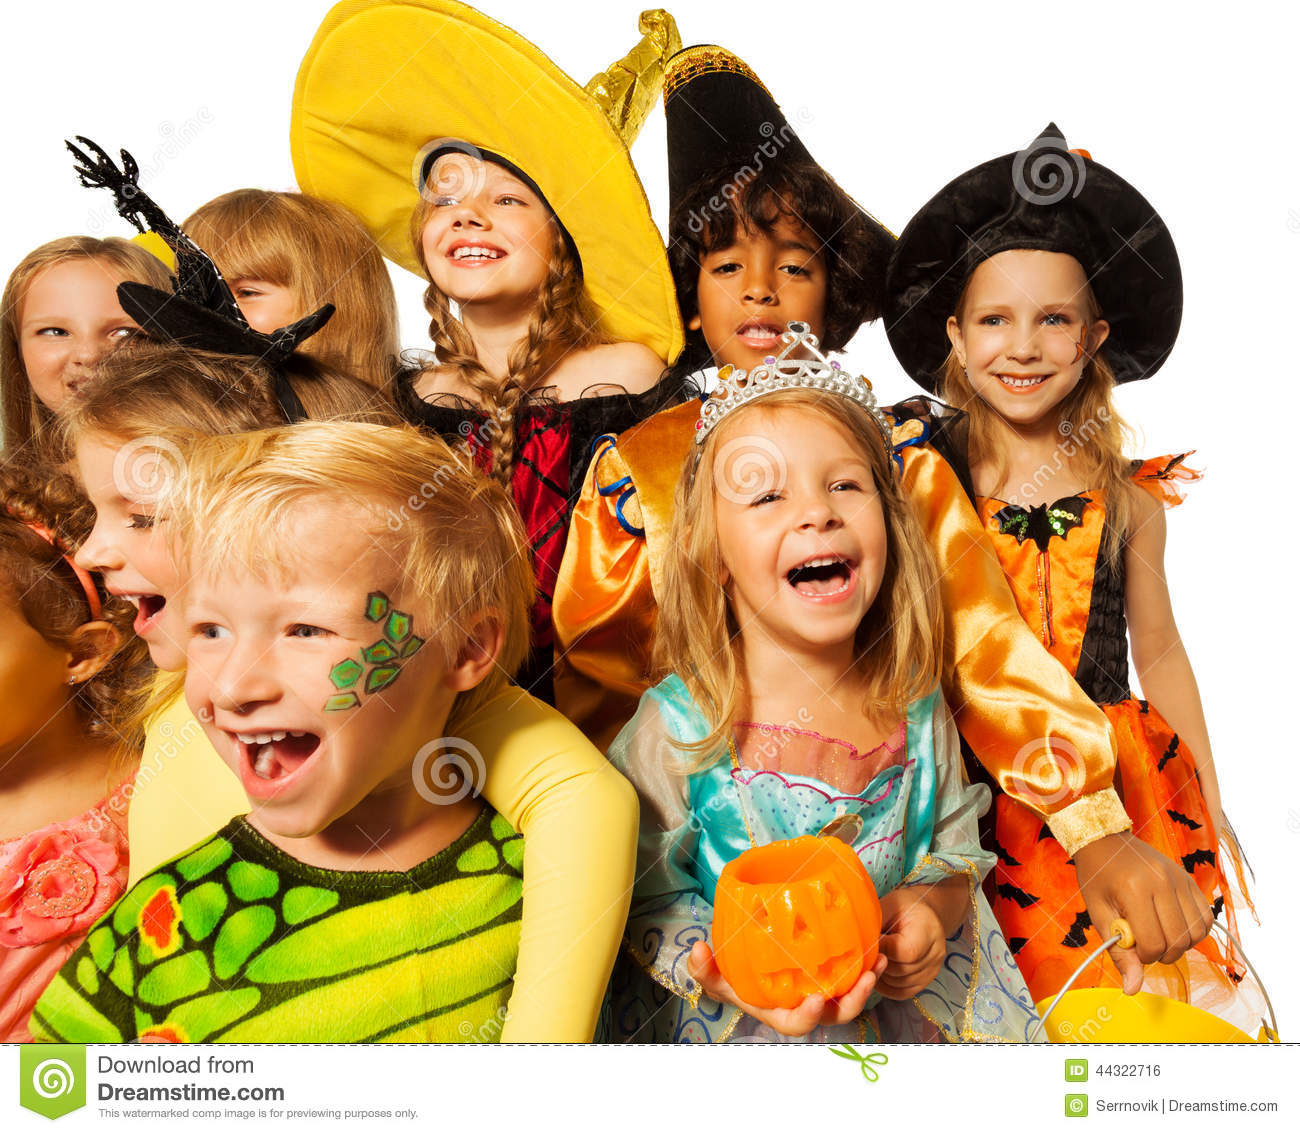 Kids Stock A Wide Selection Of Luxury Premium Cotton: Funny Wide Angle Shoot Of Kids In Costumes Stock Photo